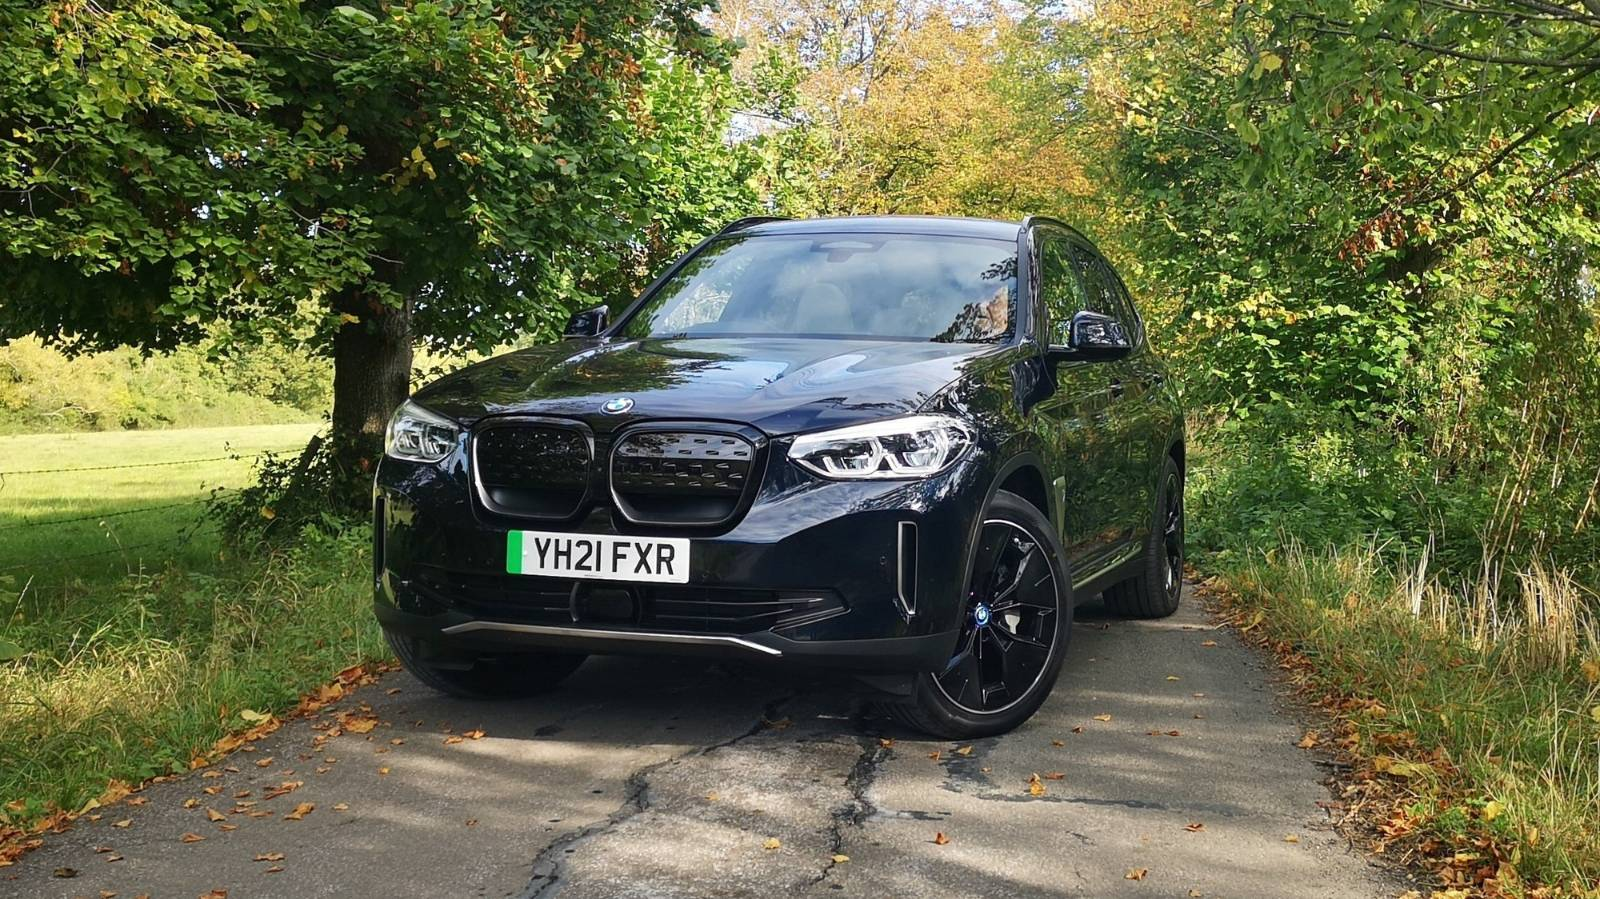 Silent running: the BMW iX3 whispers its green-creds